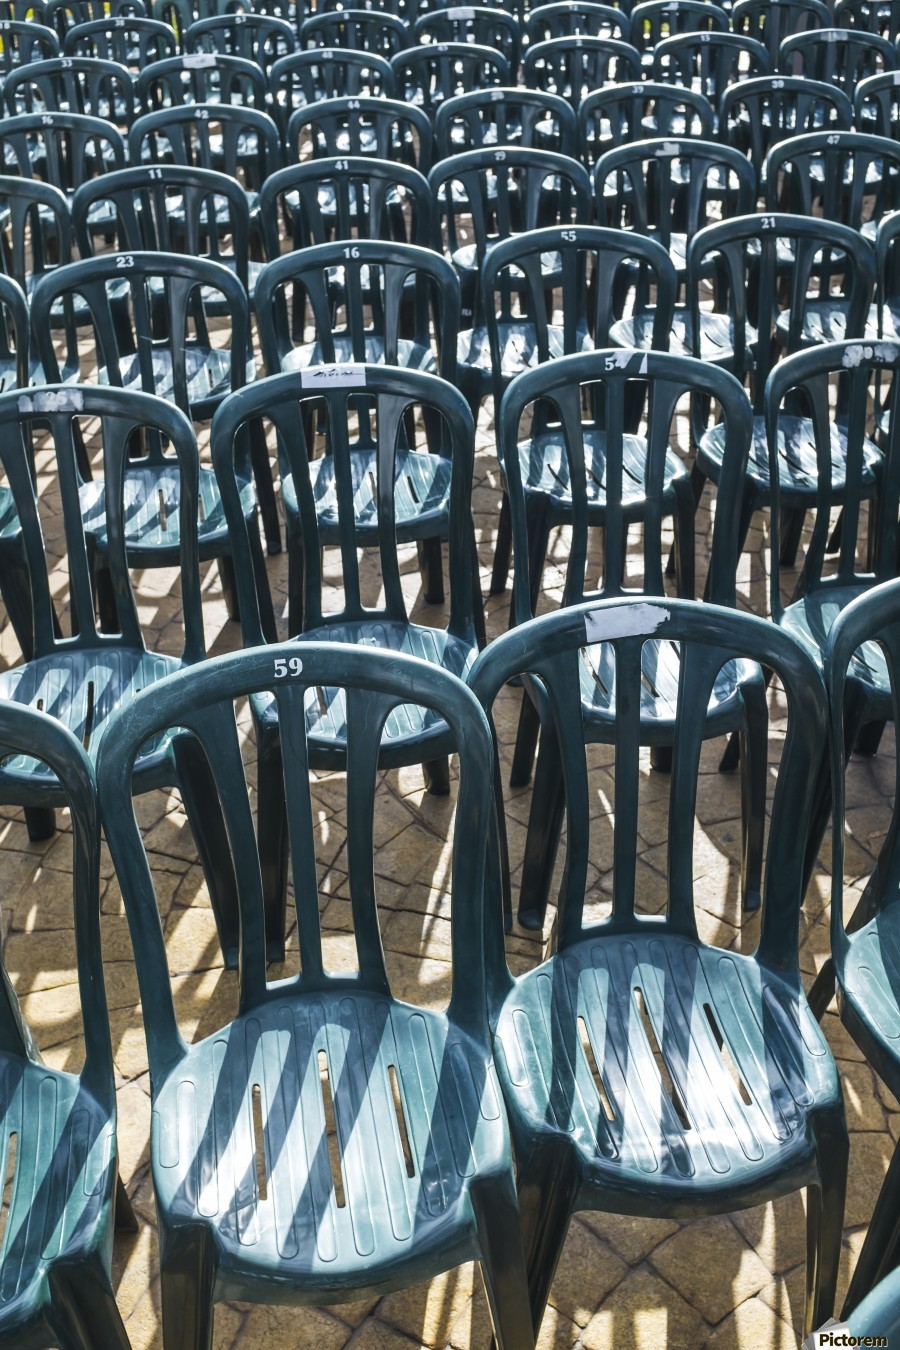 Plastic green chairs lined up in rows; Malaga Province, Andalusia, Spain  Print